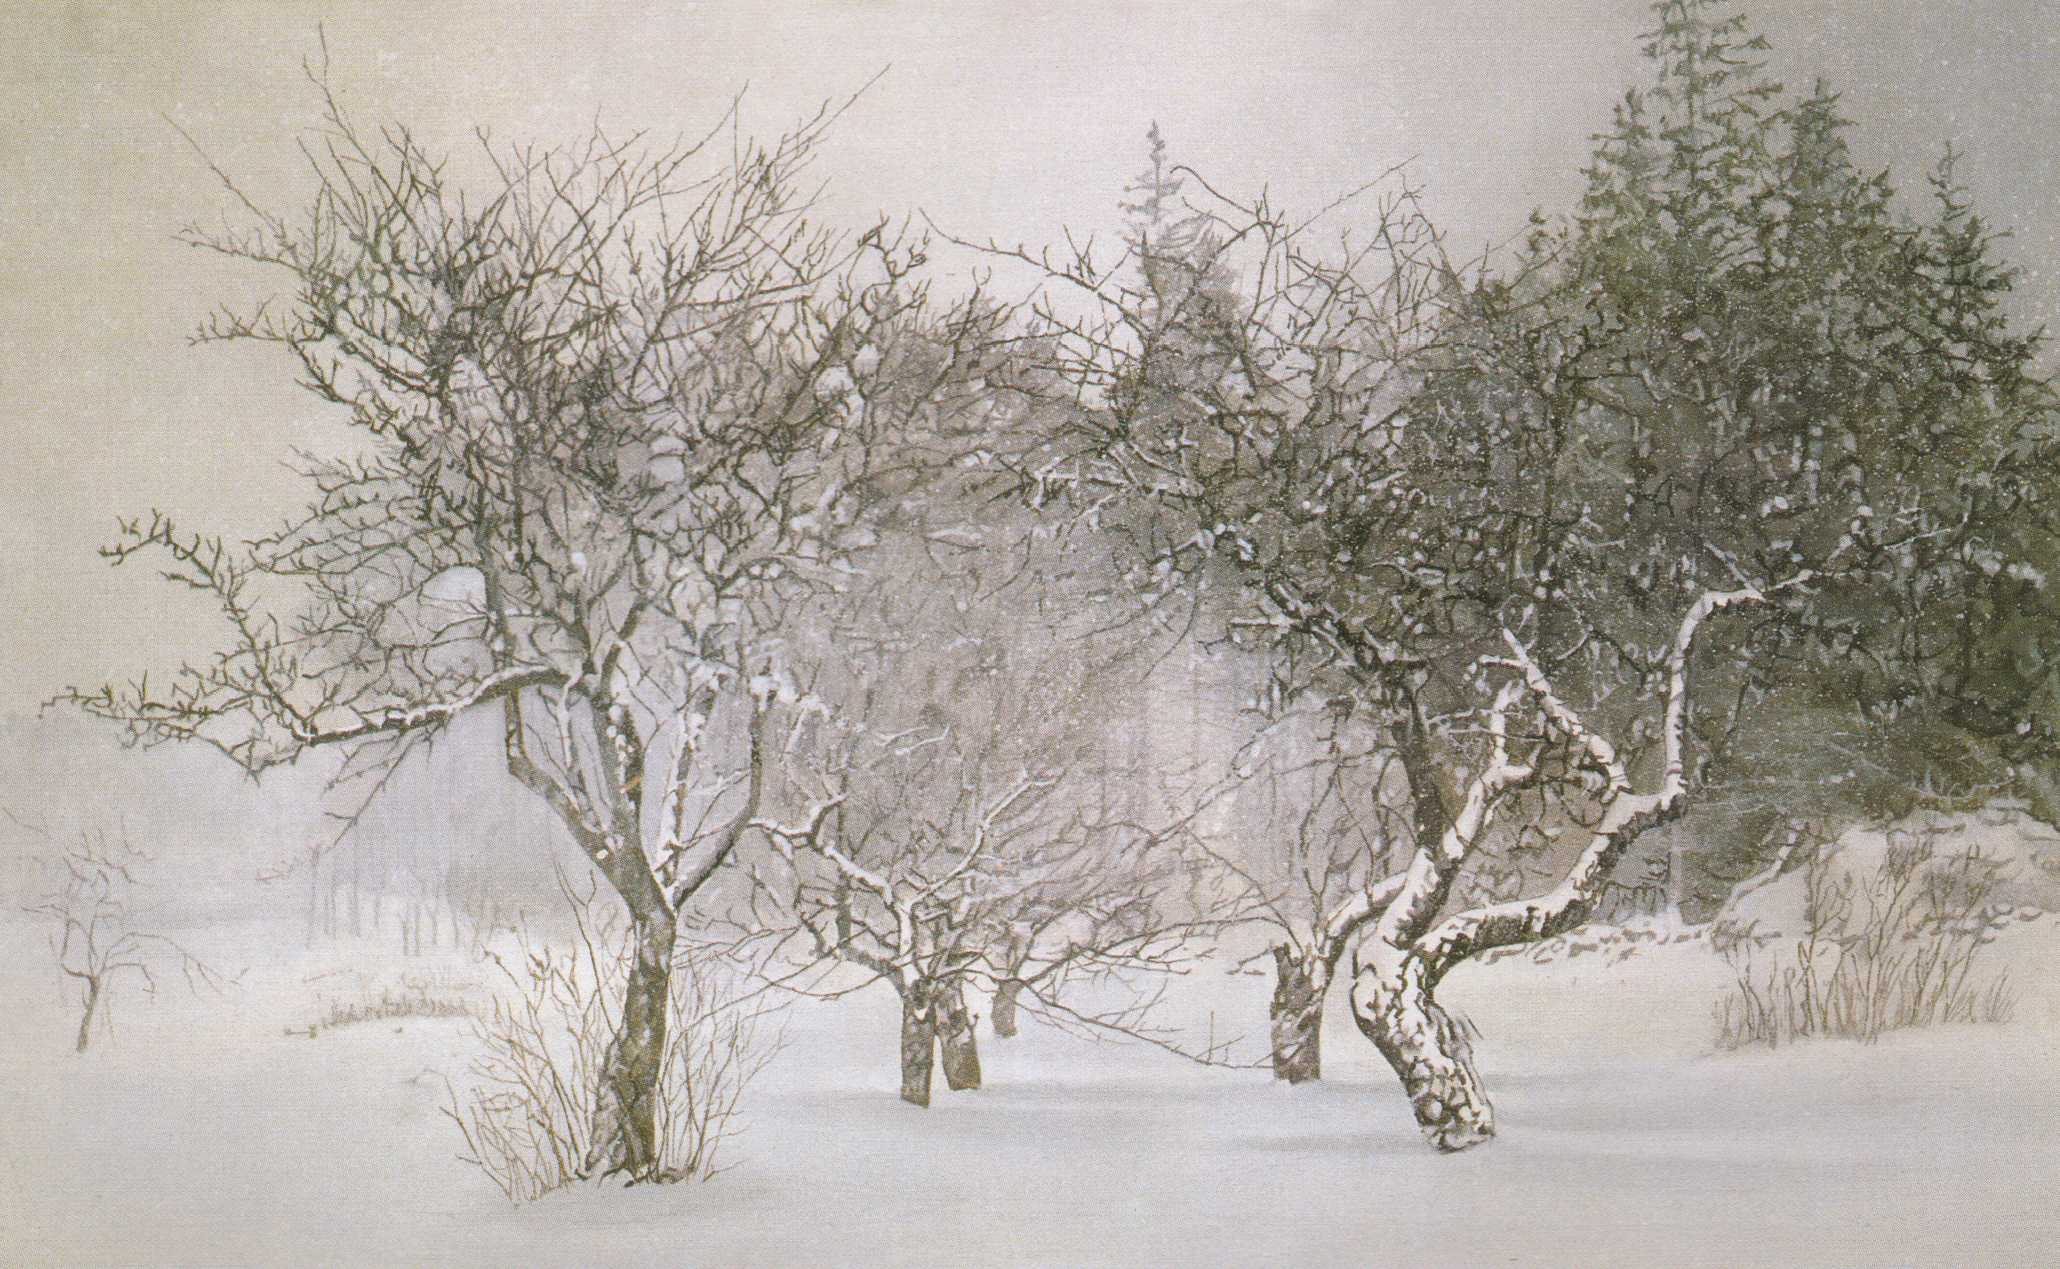 The Orchard in Winter II